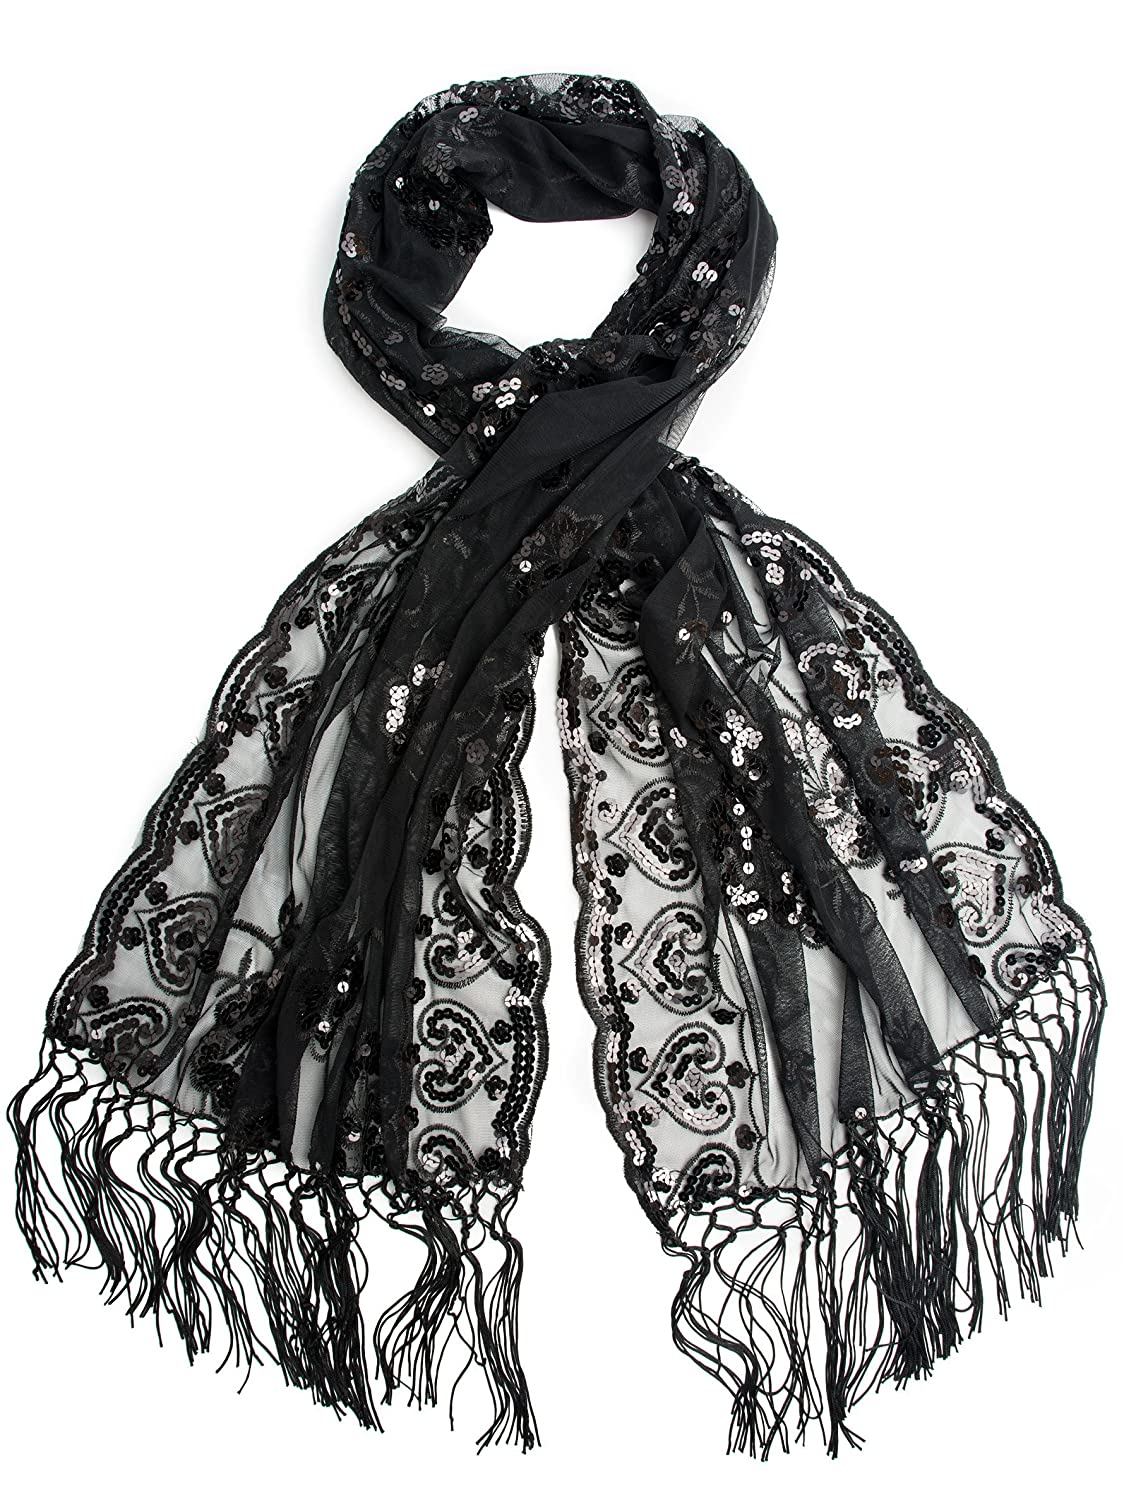 1920s Accessories | Great Gatsby Accessories Guide Black Madison Shawl Long Fringe Sequin Evening Wrap $14.95 AT vintagedancer.com